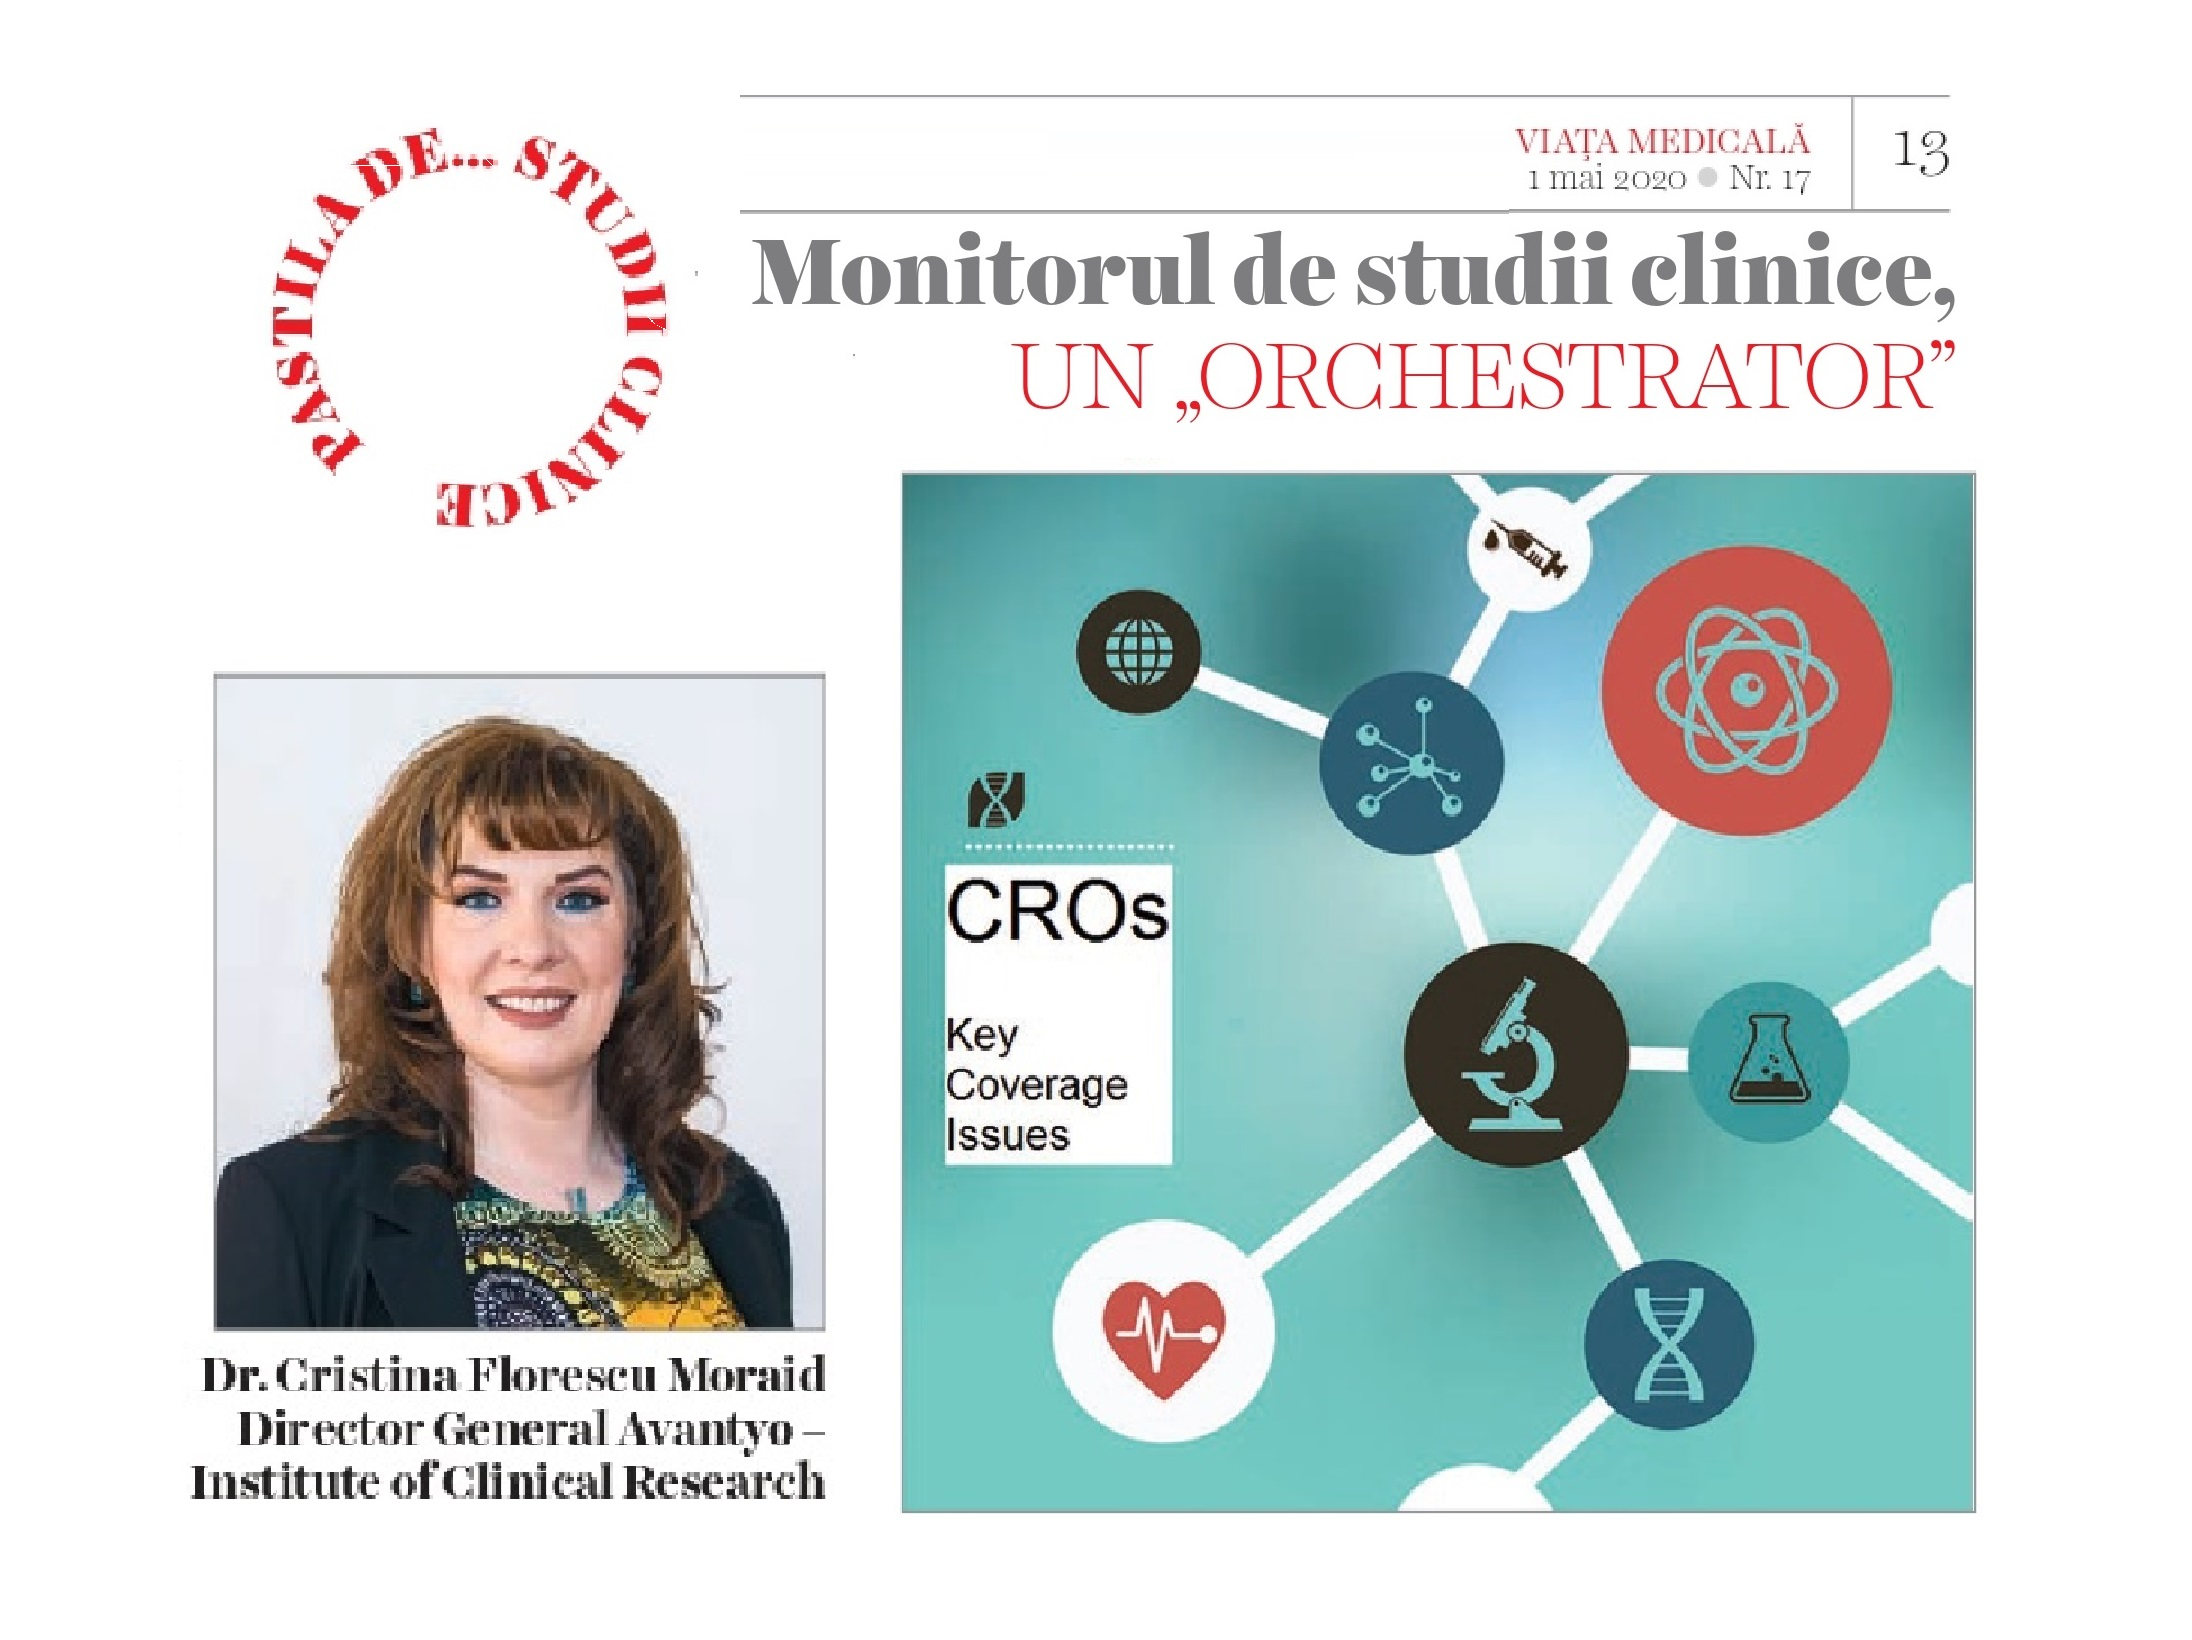 The Clinical Trials Monitor, an ``orchestrator`` –  article in Viata Medicala Magazine